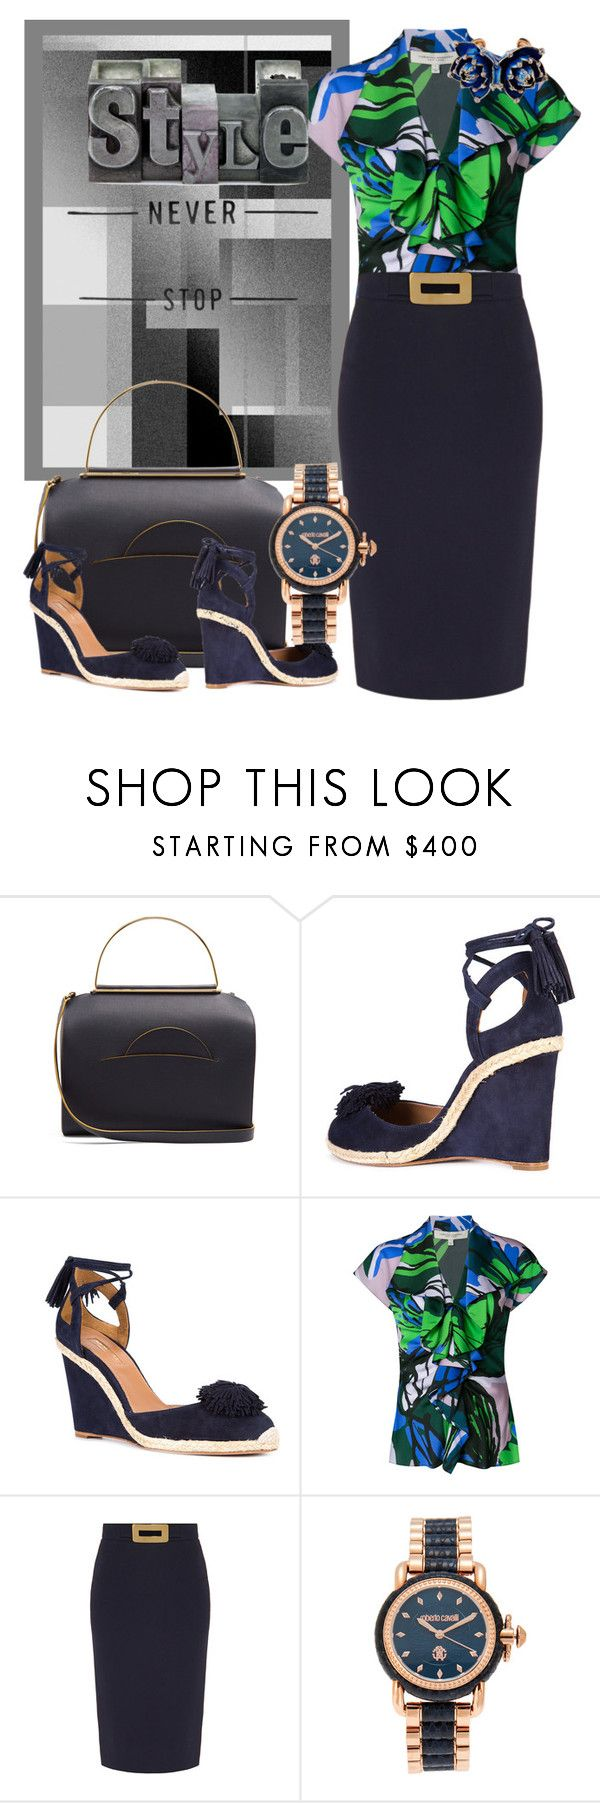 """Time is not waiting for you"" by m-kints ❤ liked on Polyvore featuring Roksanda, Aquazzura, Carolina Herrera, Goat, Roberto Cavalli and MyPowerLook"